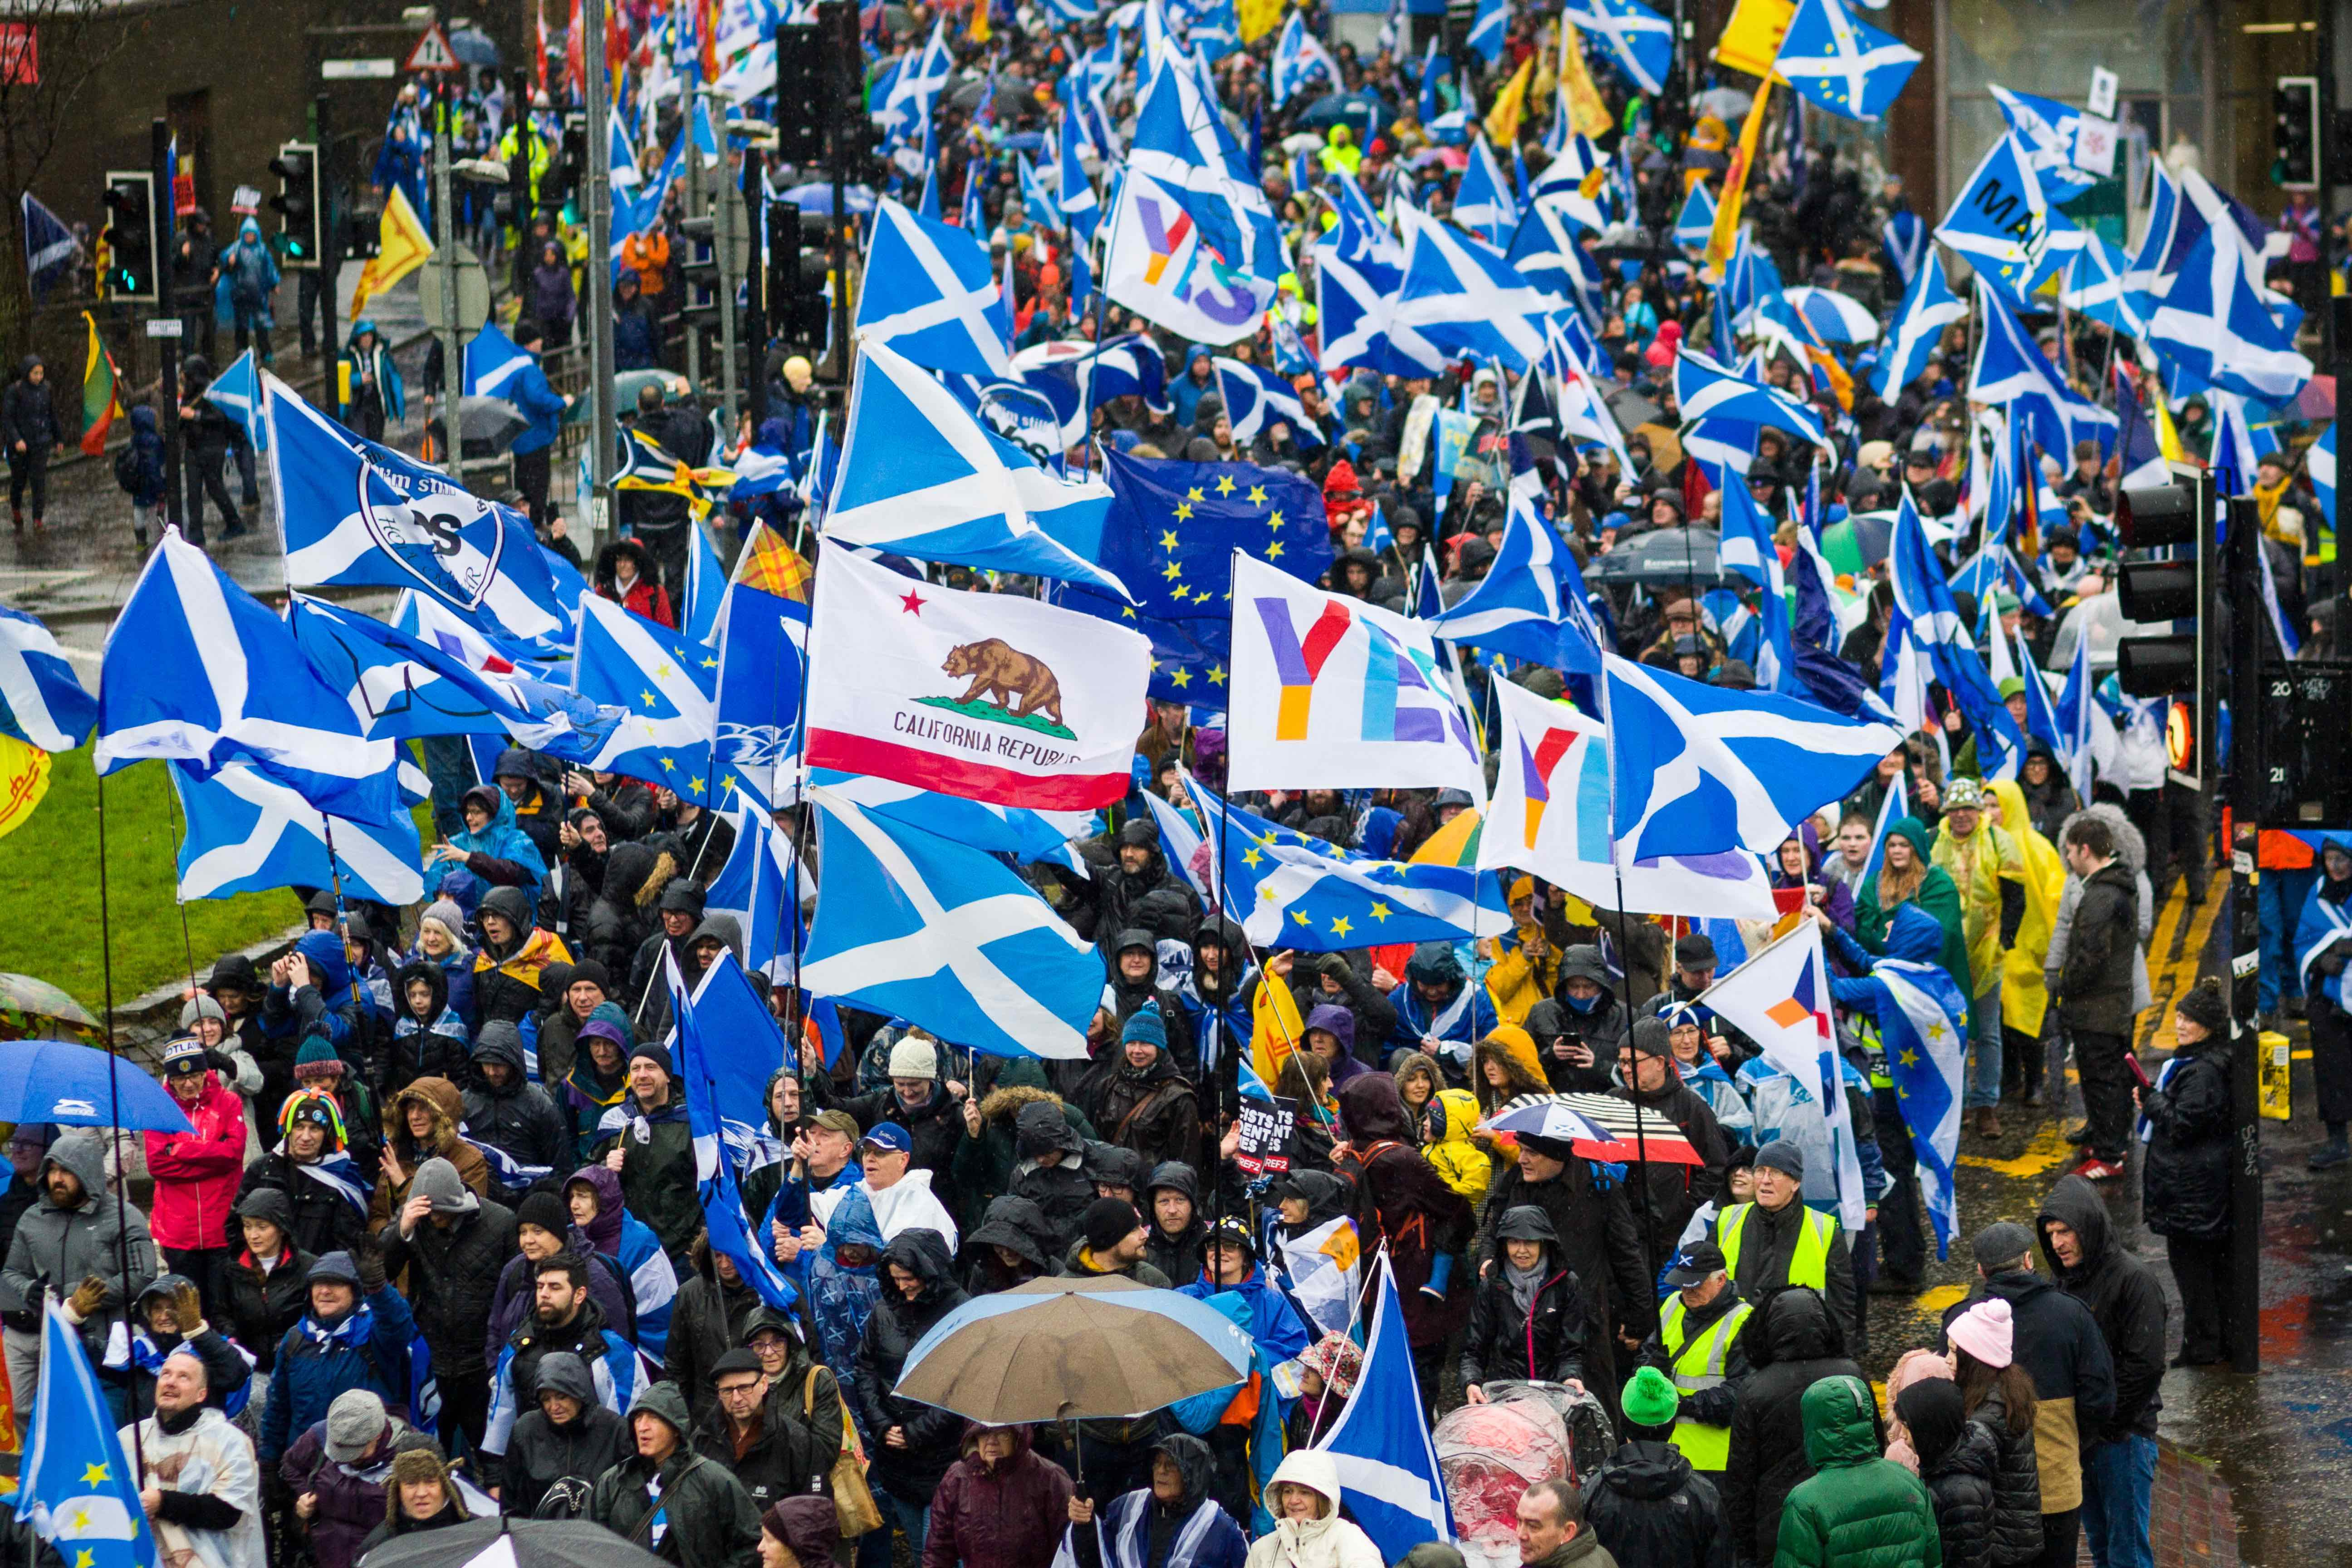 Pro-Scottish independence march in Glasgow, Scotland on 11 January 2020. © NurPhoto via Getty Images